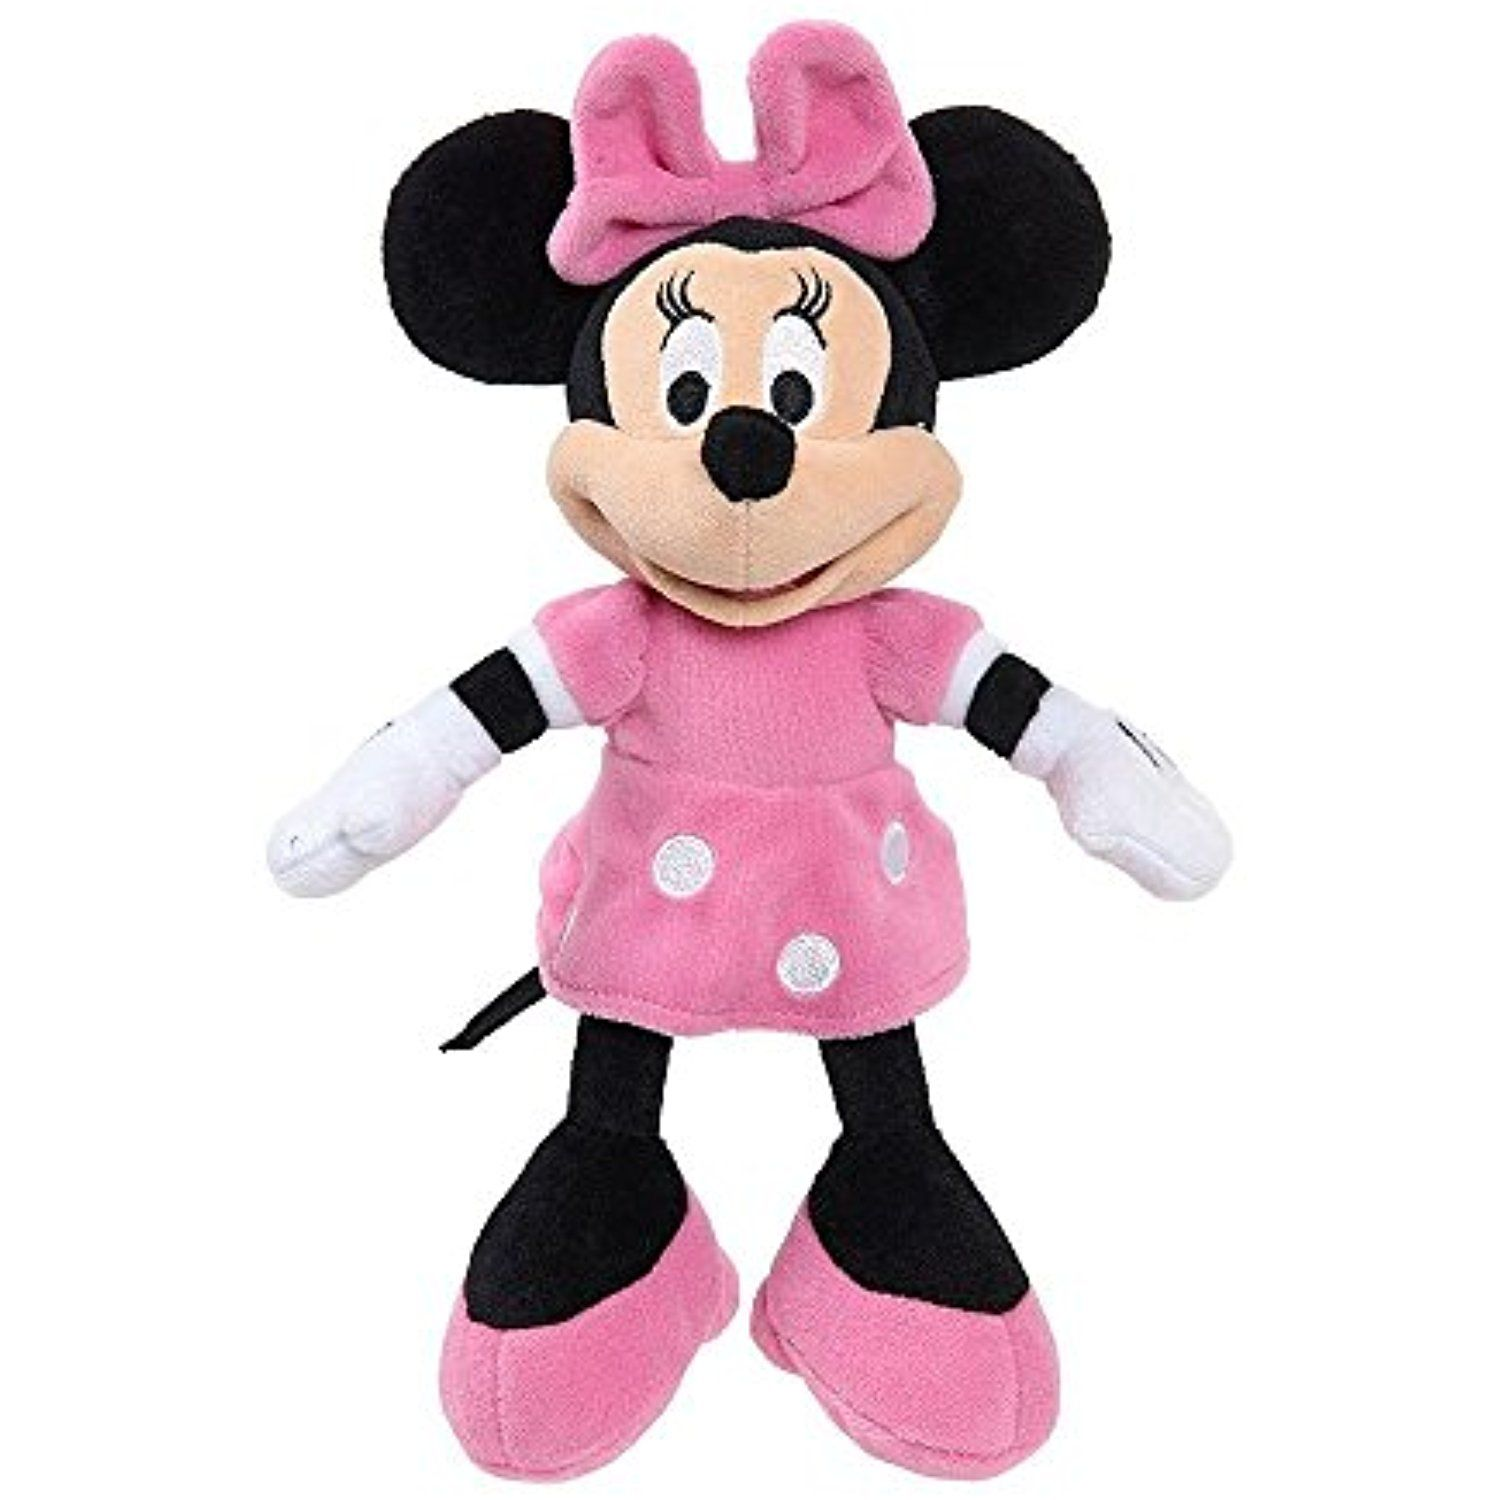 5e6062dab8f Magical Friends Collection Mini Plush - Minnie Mouse Pink Dress -- Details  can be found by clicking on the image. (This is an affiliate link)  Puppets